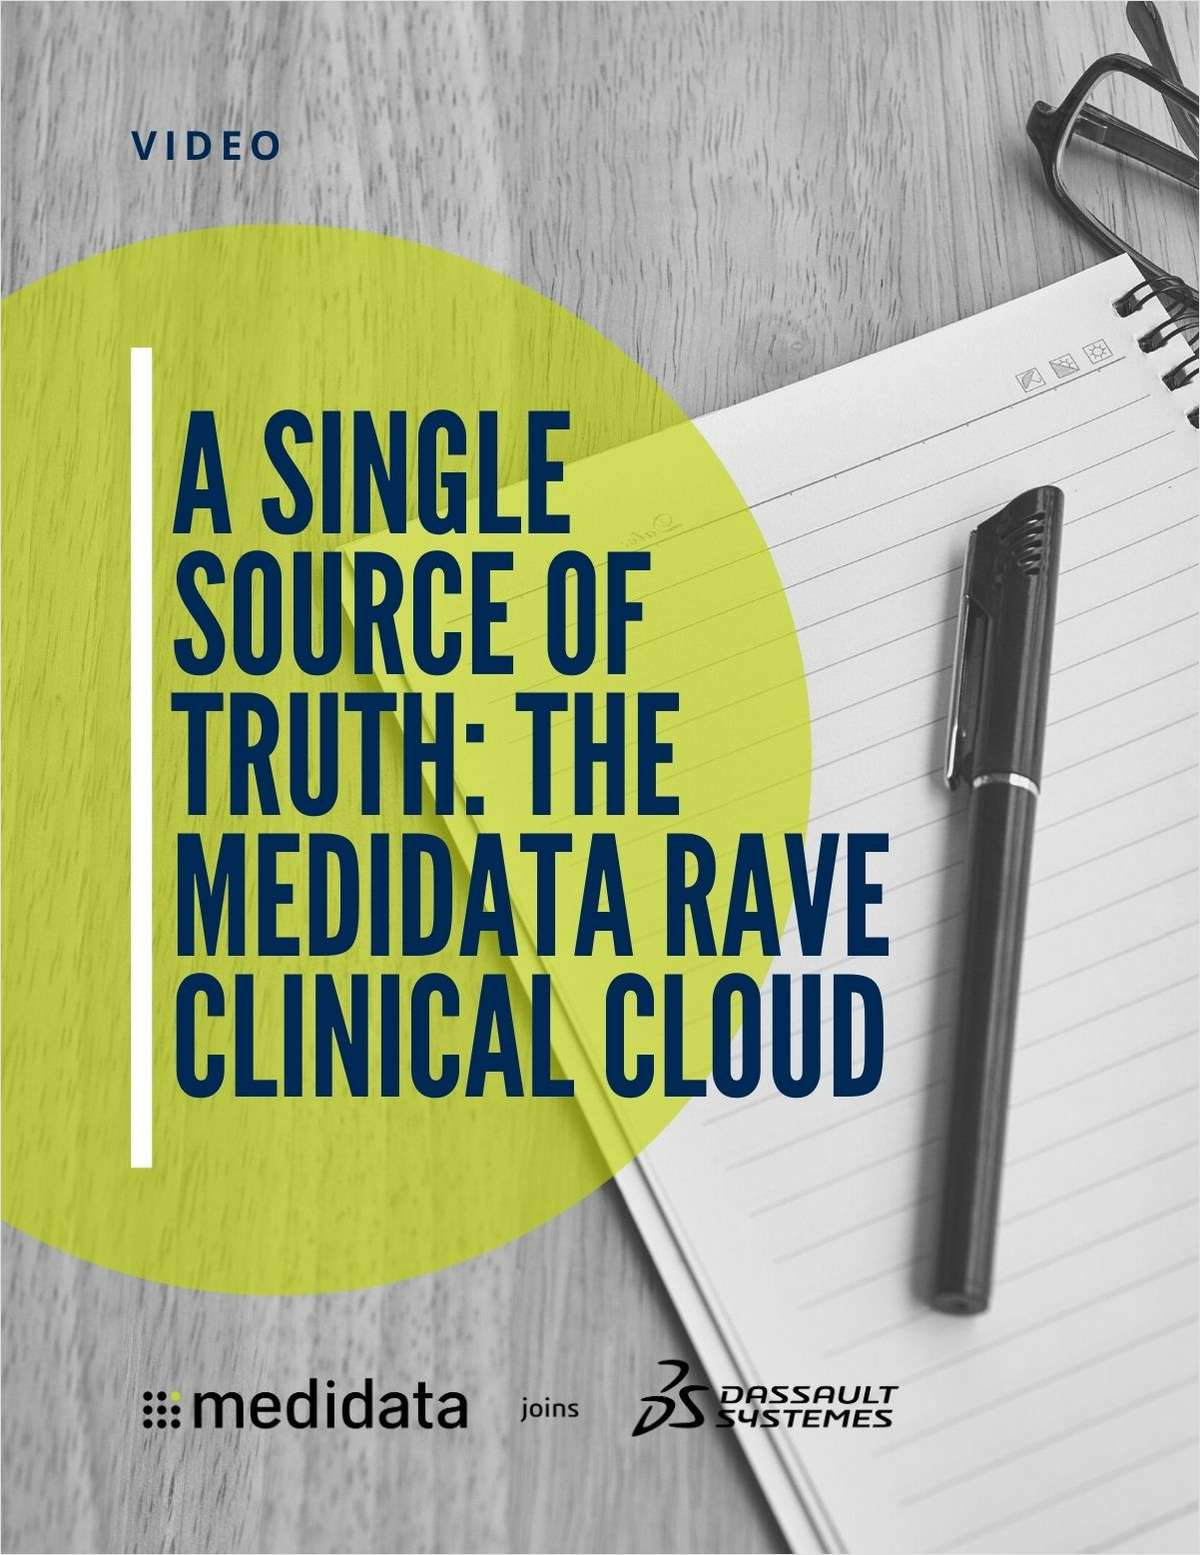 A Single Source of Truth: The Medidata Rave Clinical Cloud